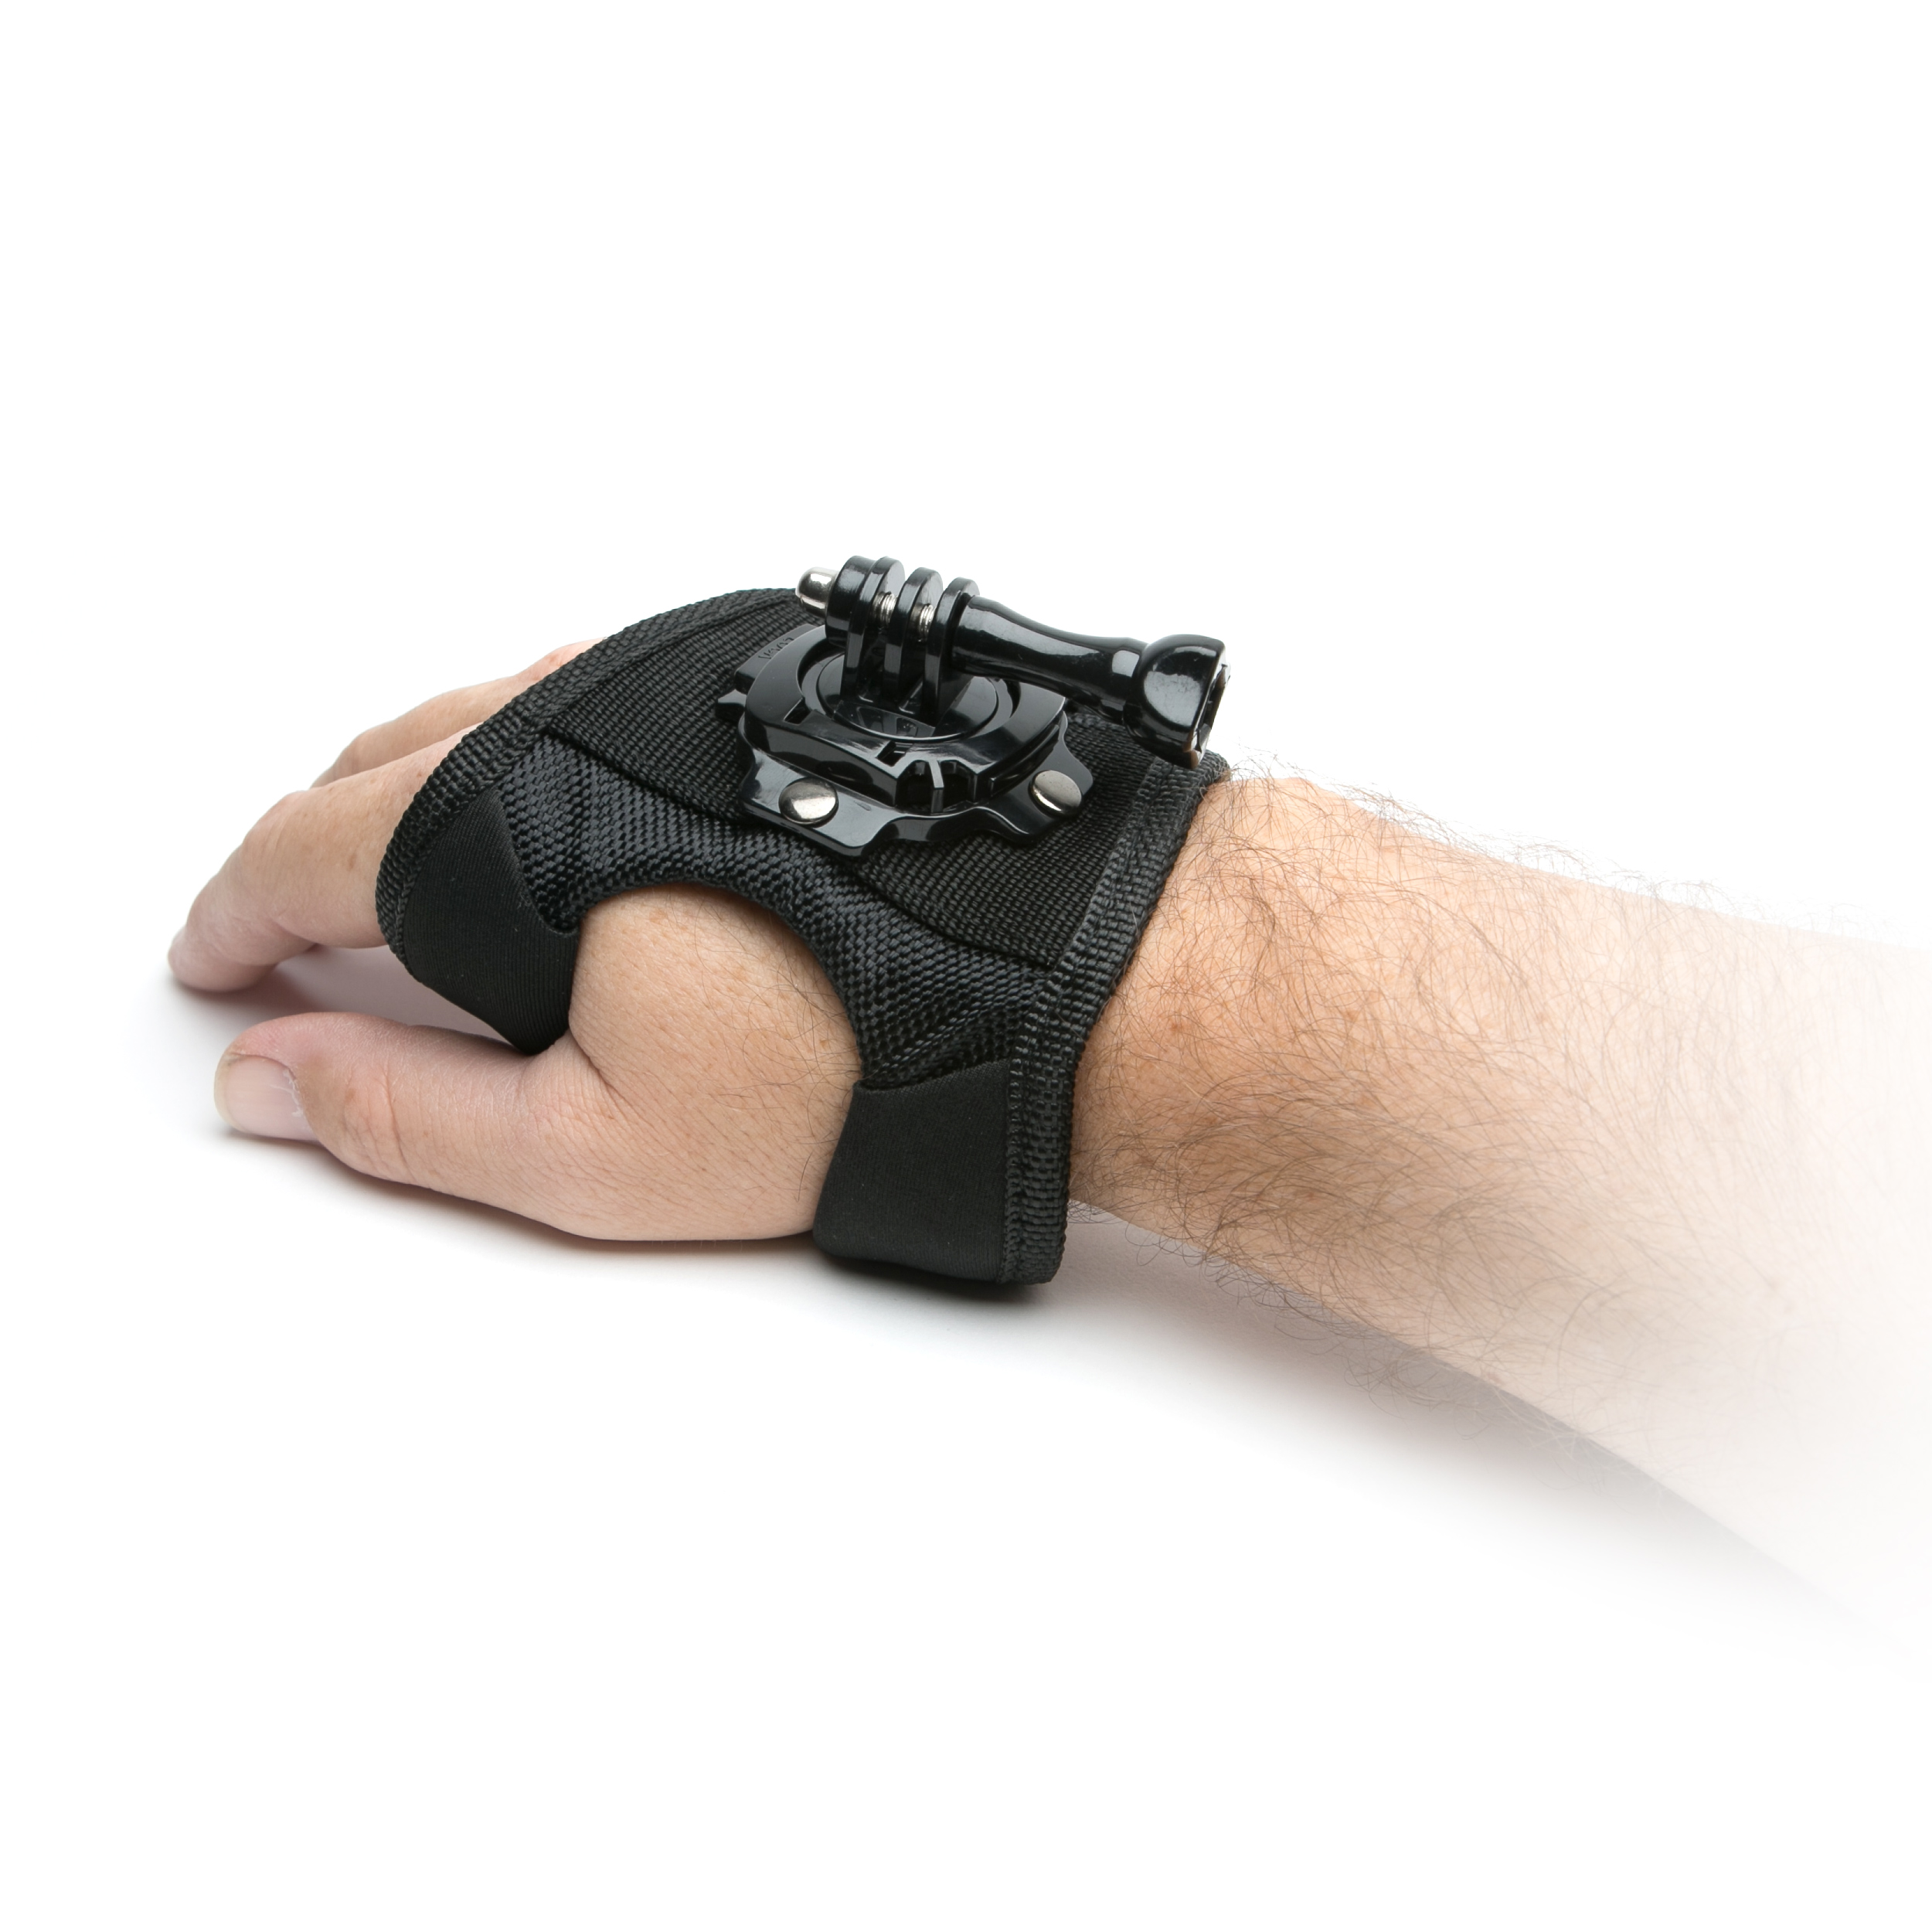 Monster vision action sport camera wrist mount